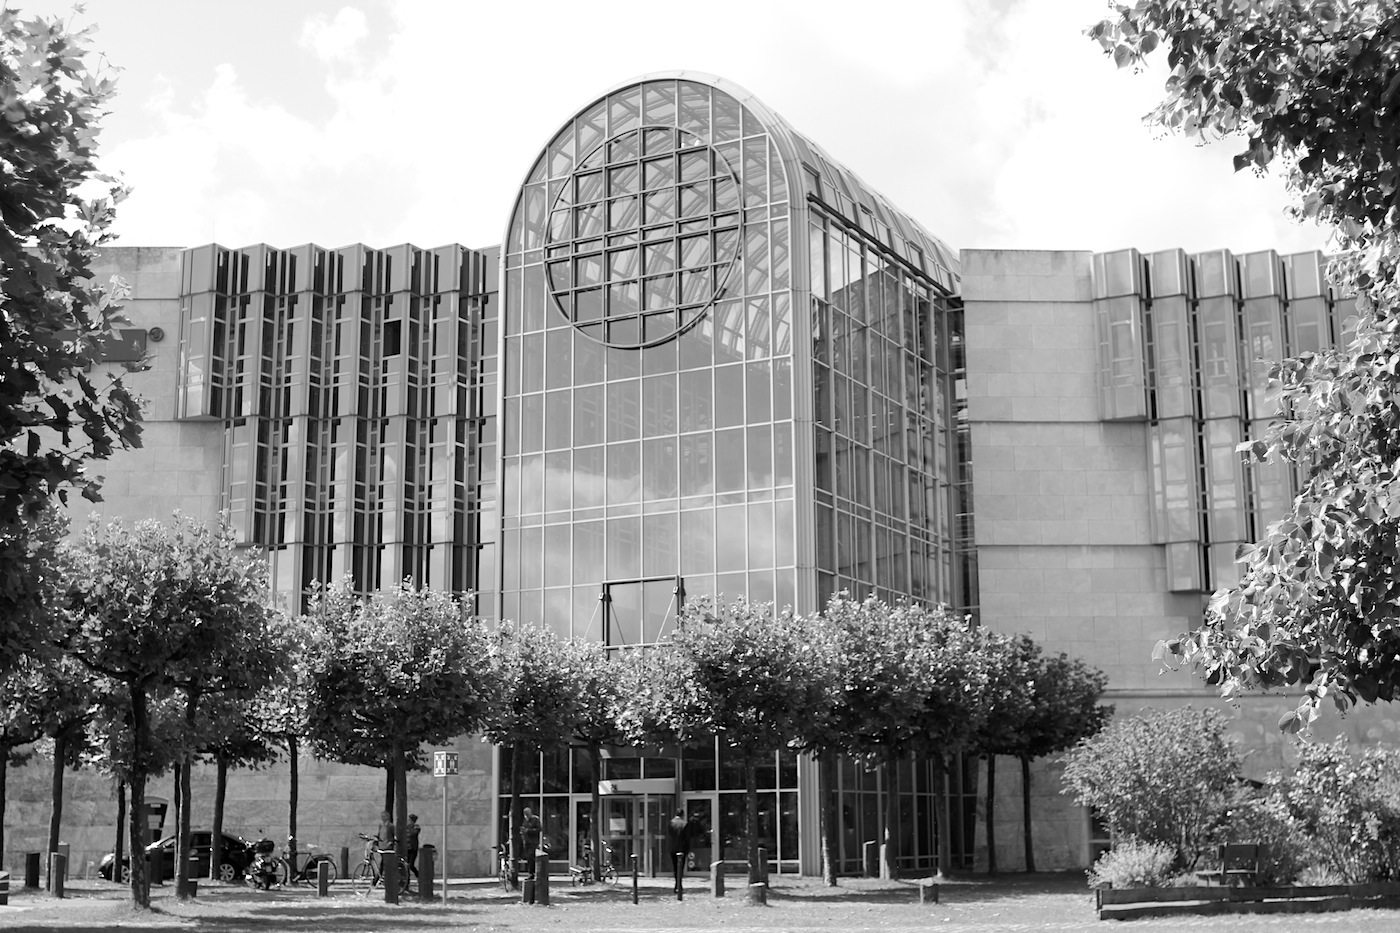 Westdeutscher Rundfunk, broadcasting centre.  The hall resembles a radio receiver.